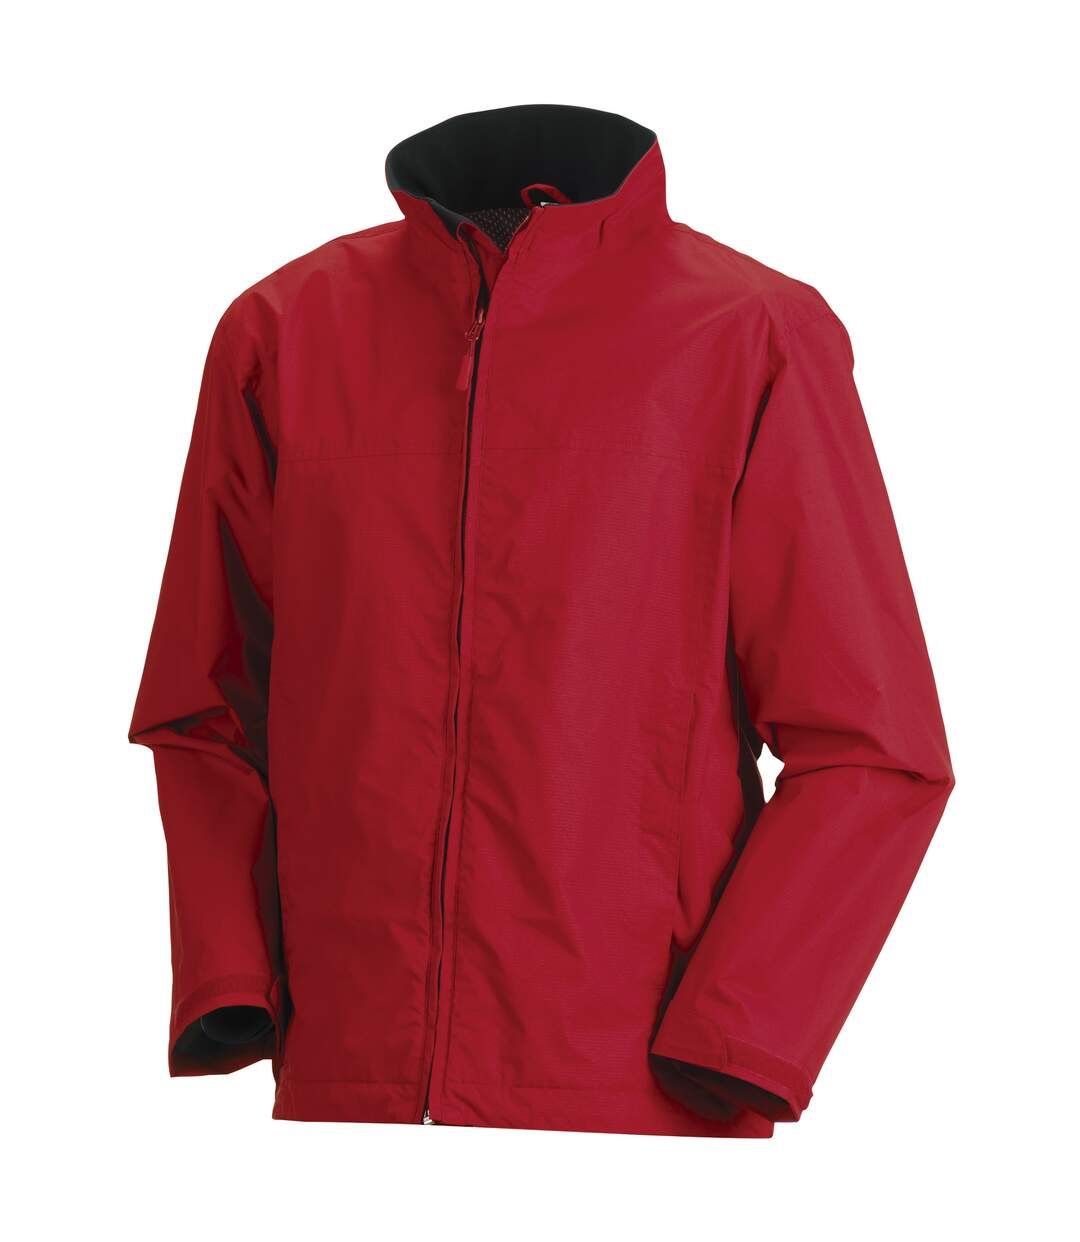 Russell Europe Mens Hydra-Shell 2000 Casual Waterproof Jacket (Classic Red) - UTRW3278